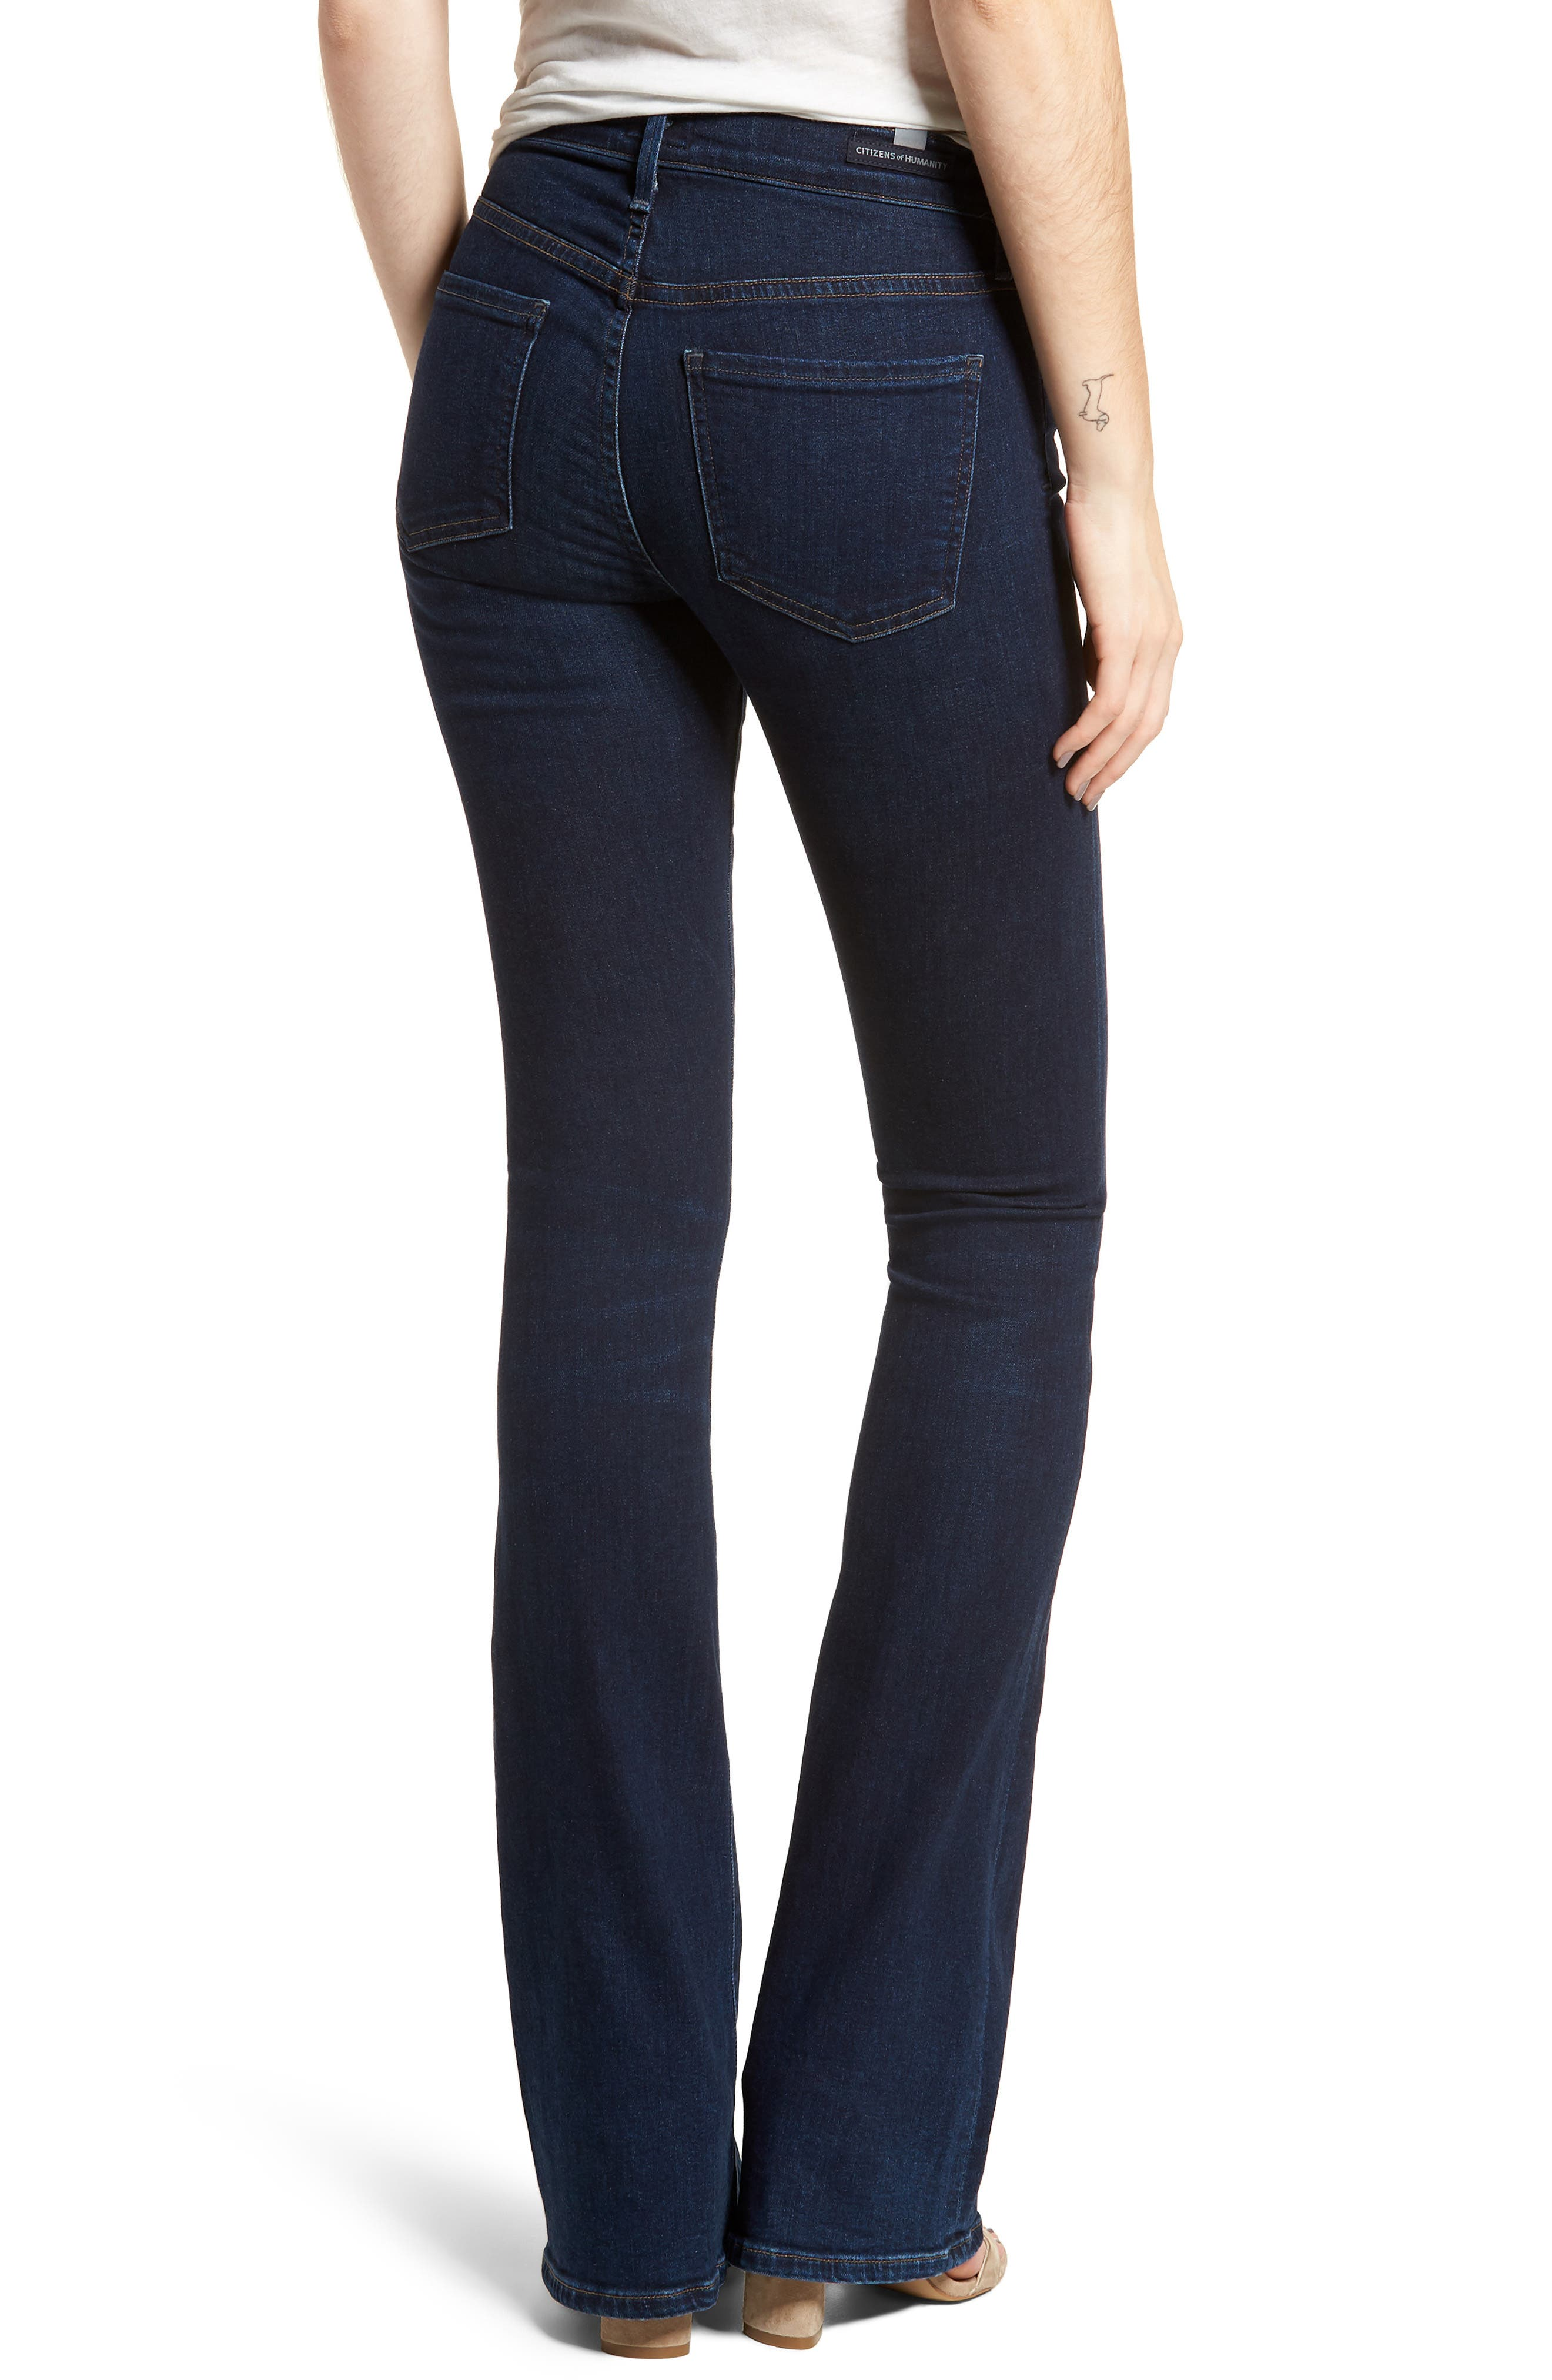 Emannuelle Bootcut Jeans,                             Alternate thumbnail 2, color,                             Galaxy